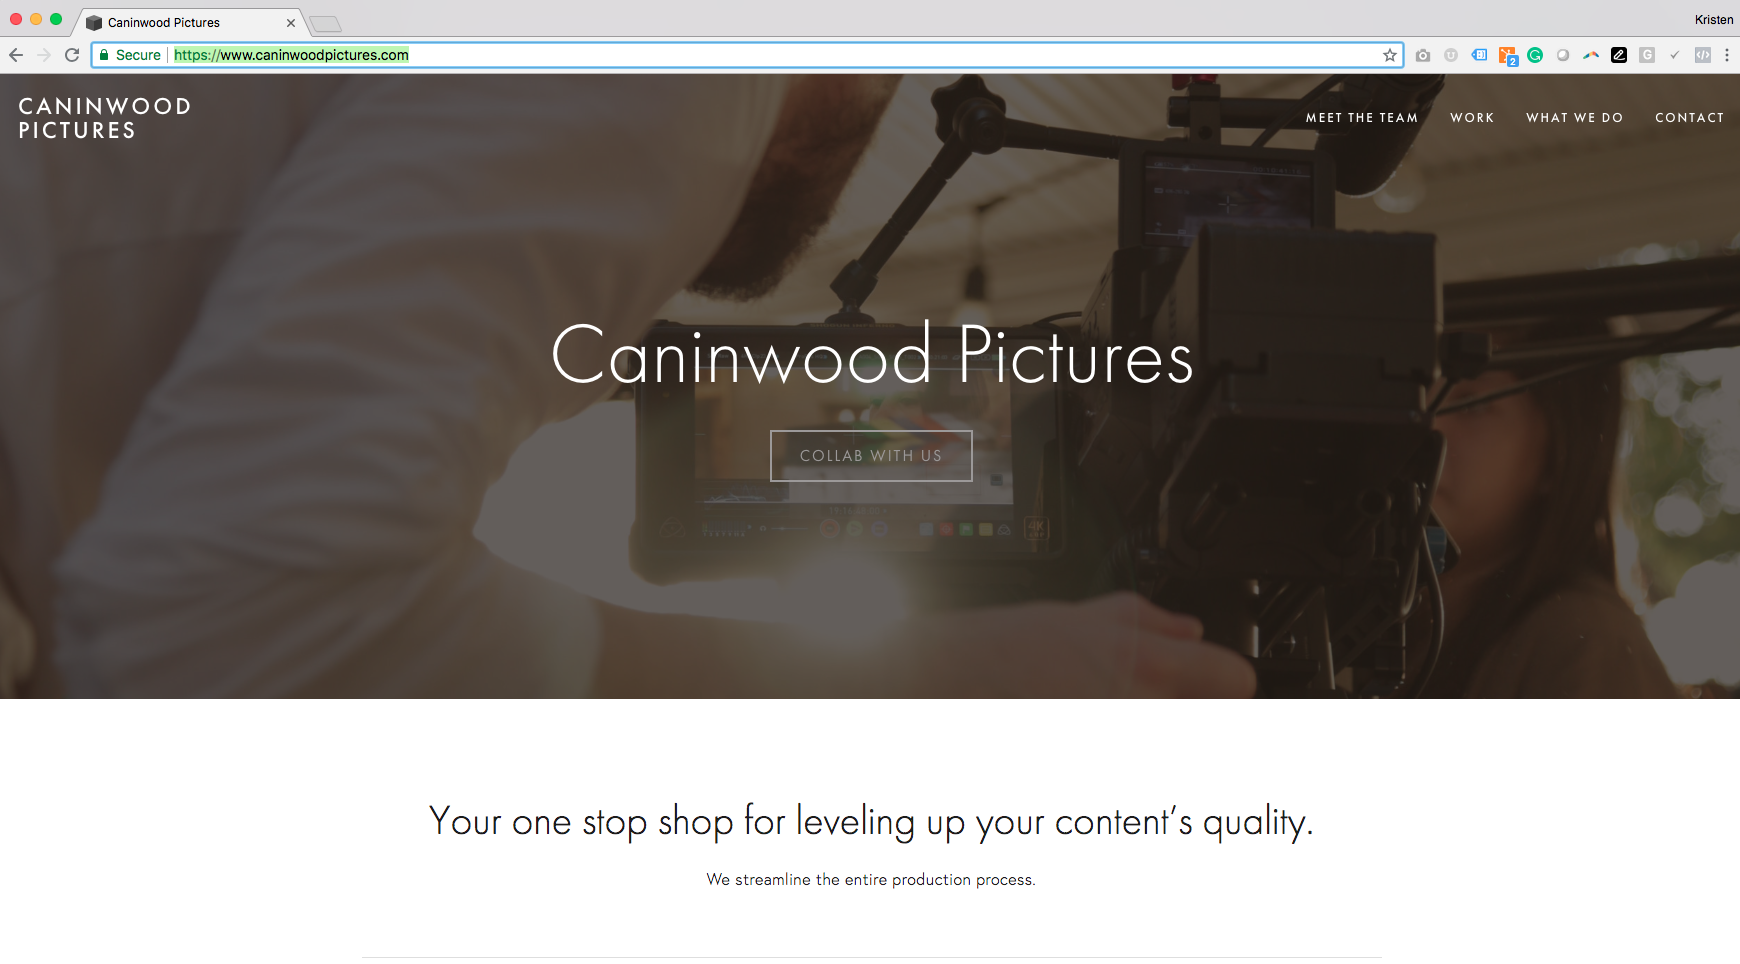 Caninwood Pictures